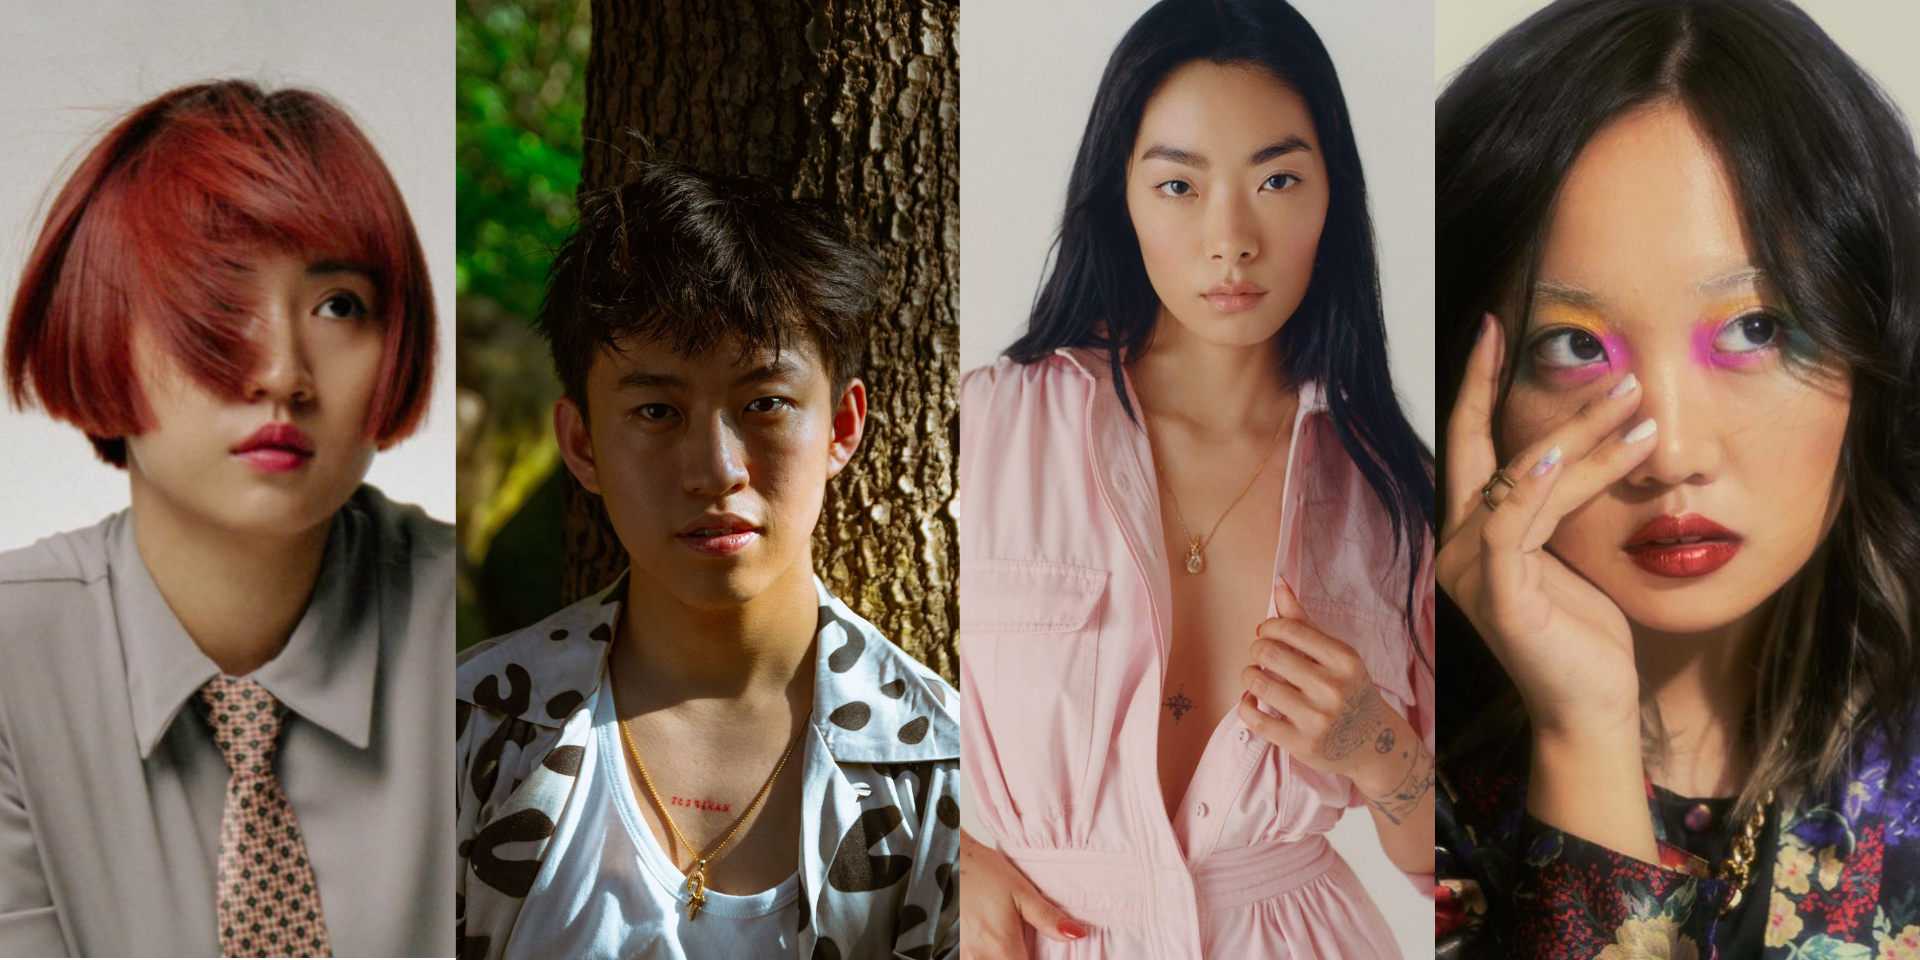 9m88, Rich Brian, Rina Sawayama, ena mori, and more are nominated at the 11th Golden Indie Music Awards